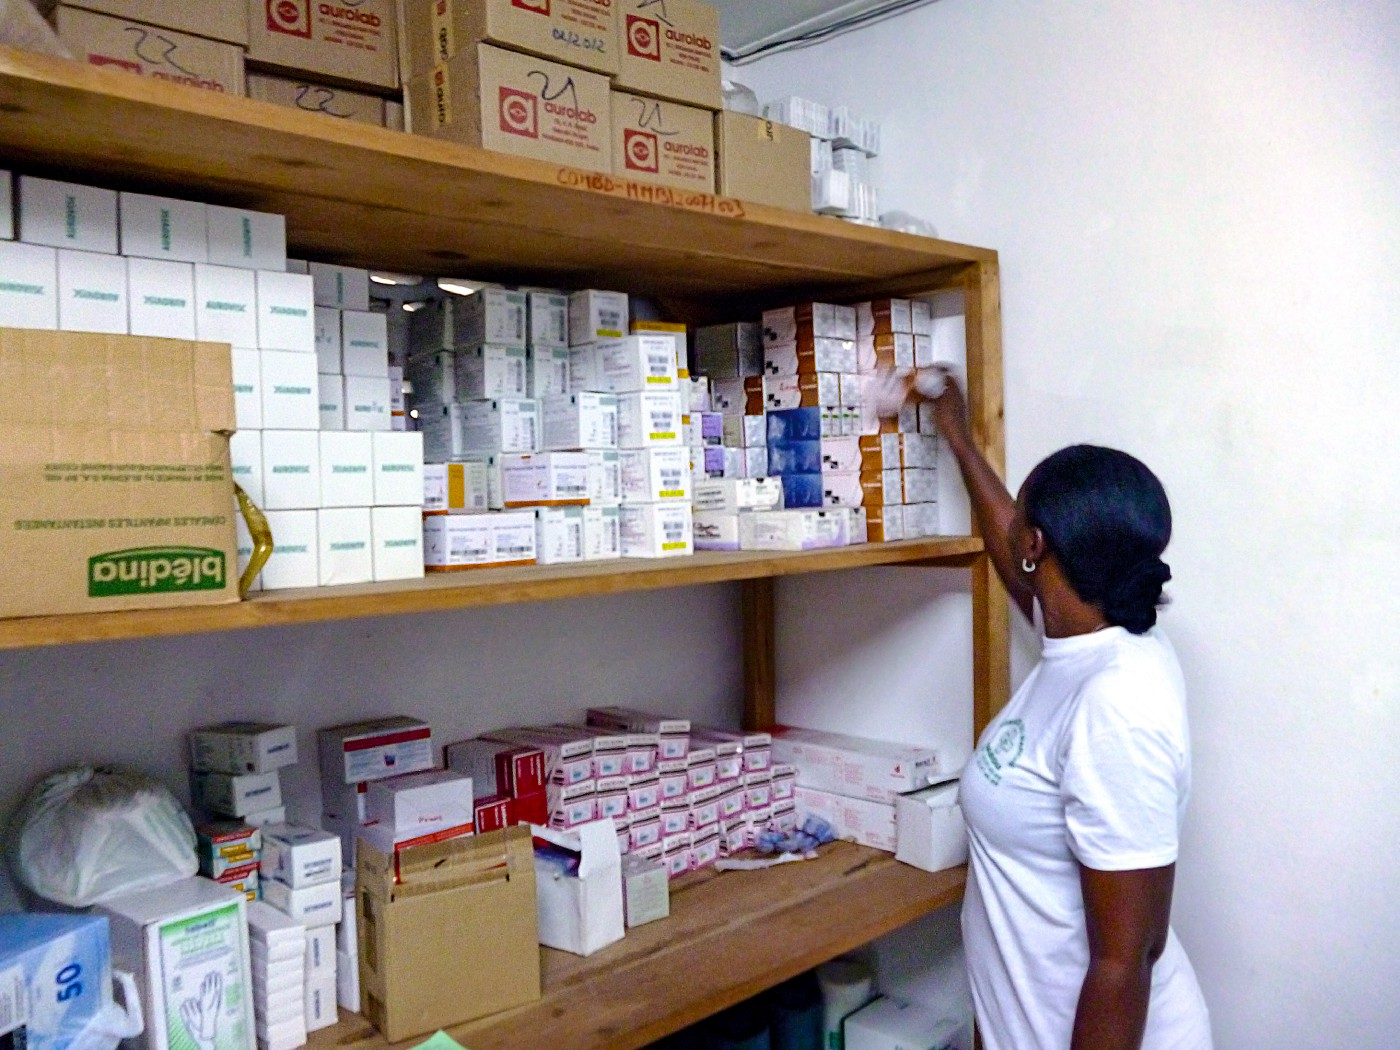 A woman takes a single box of medication from a rack of shelving, full of medicine boxes.